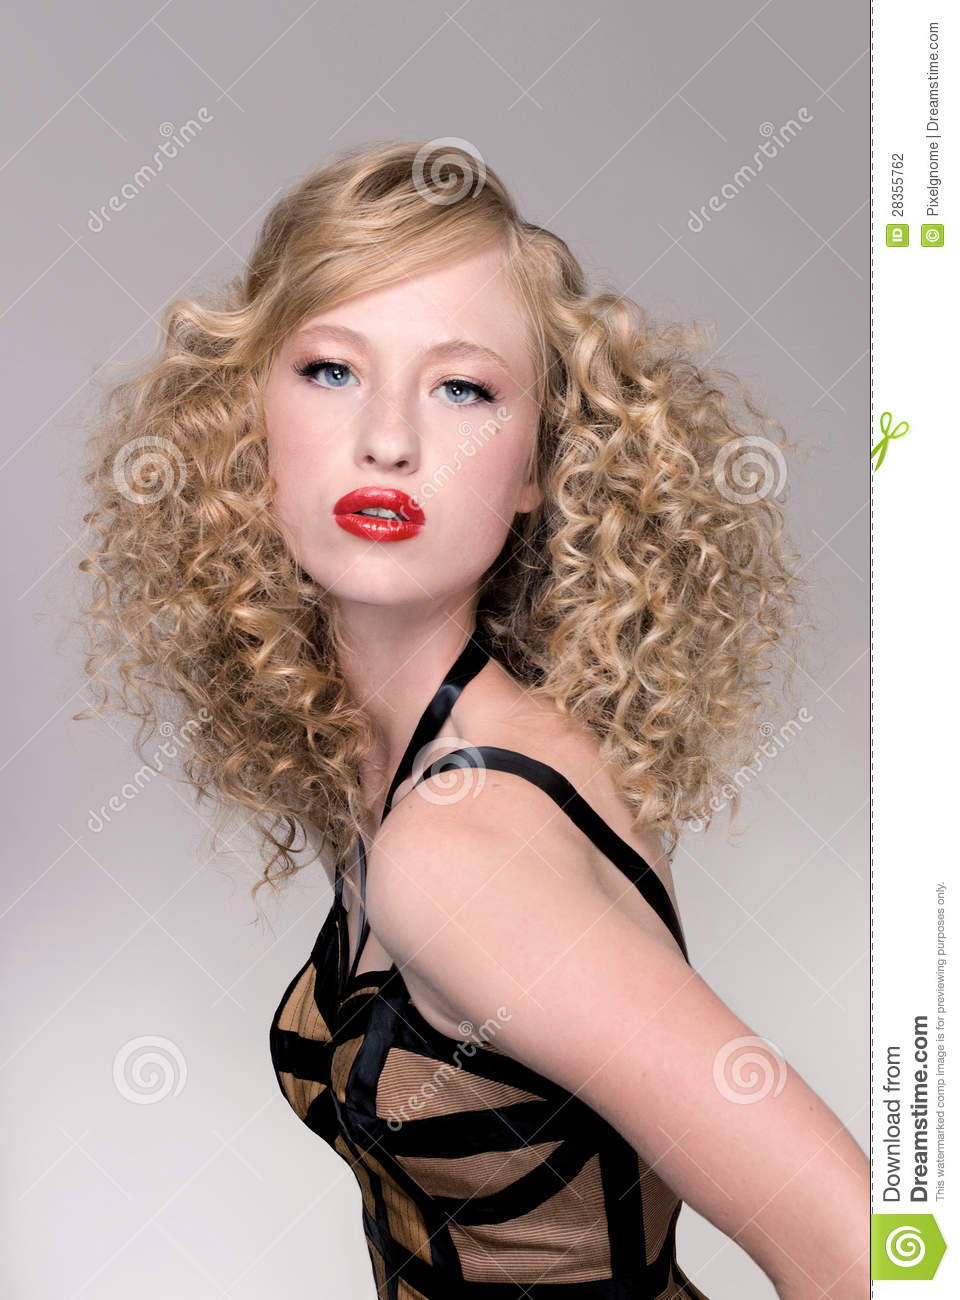 salon fashion hair model stock photo image of young